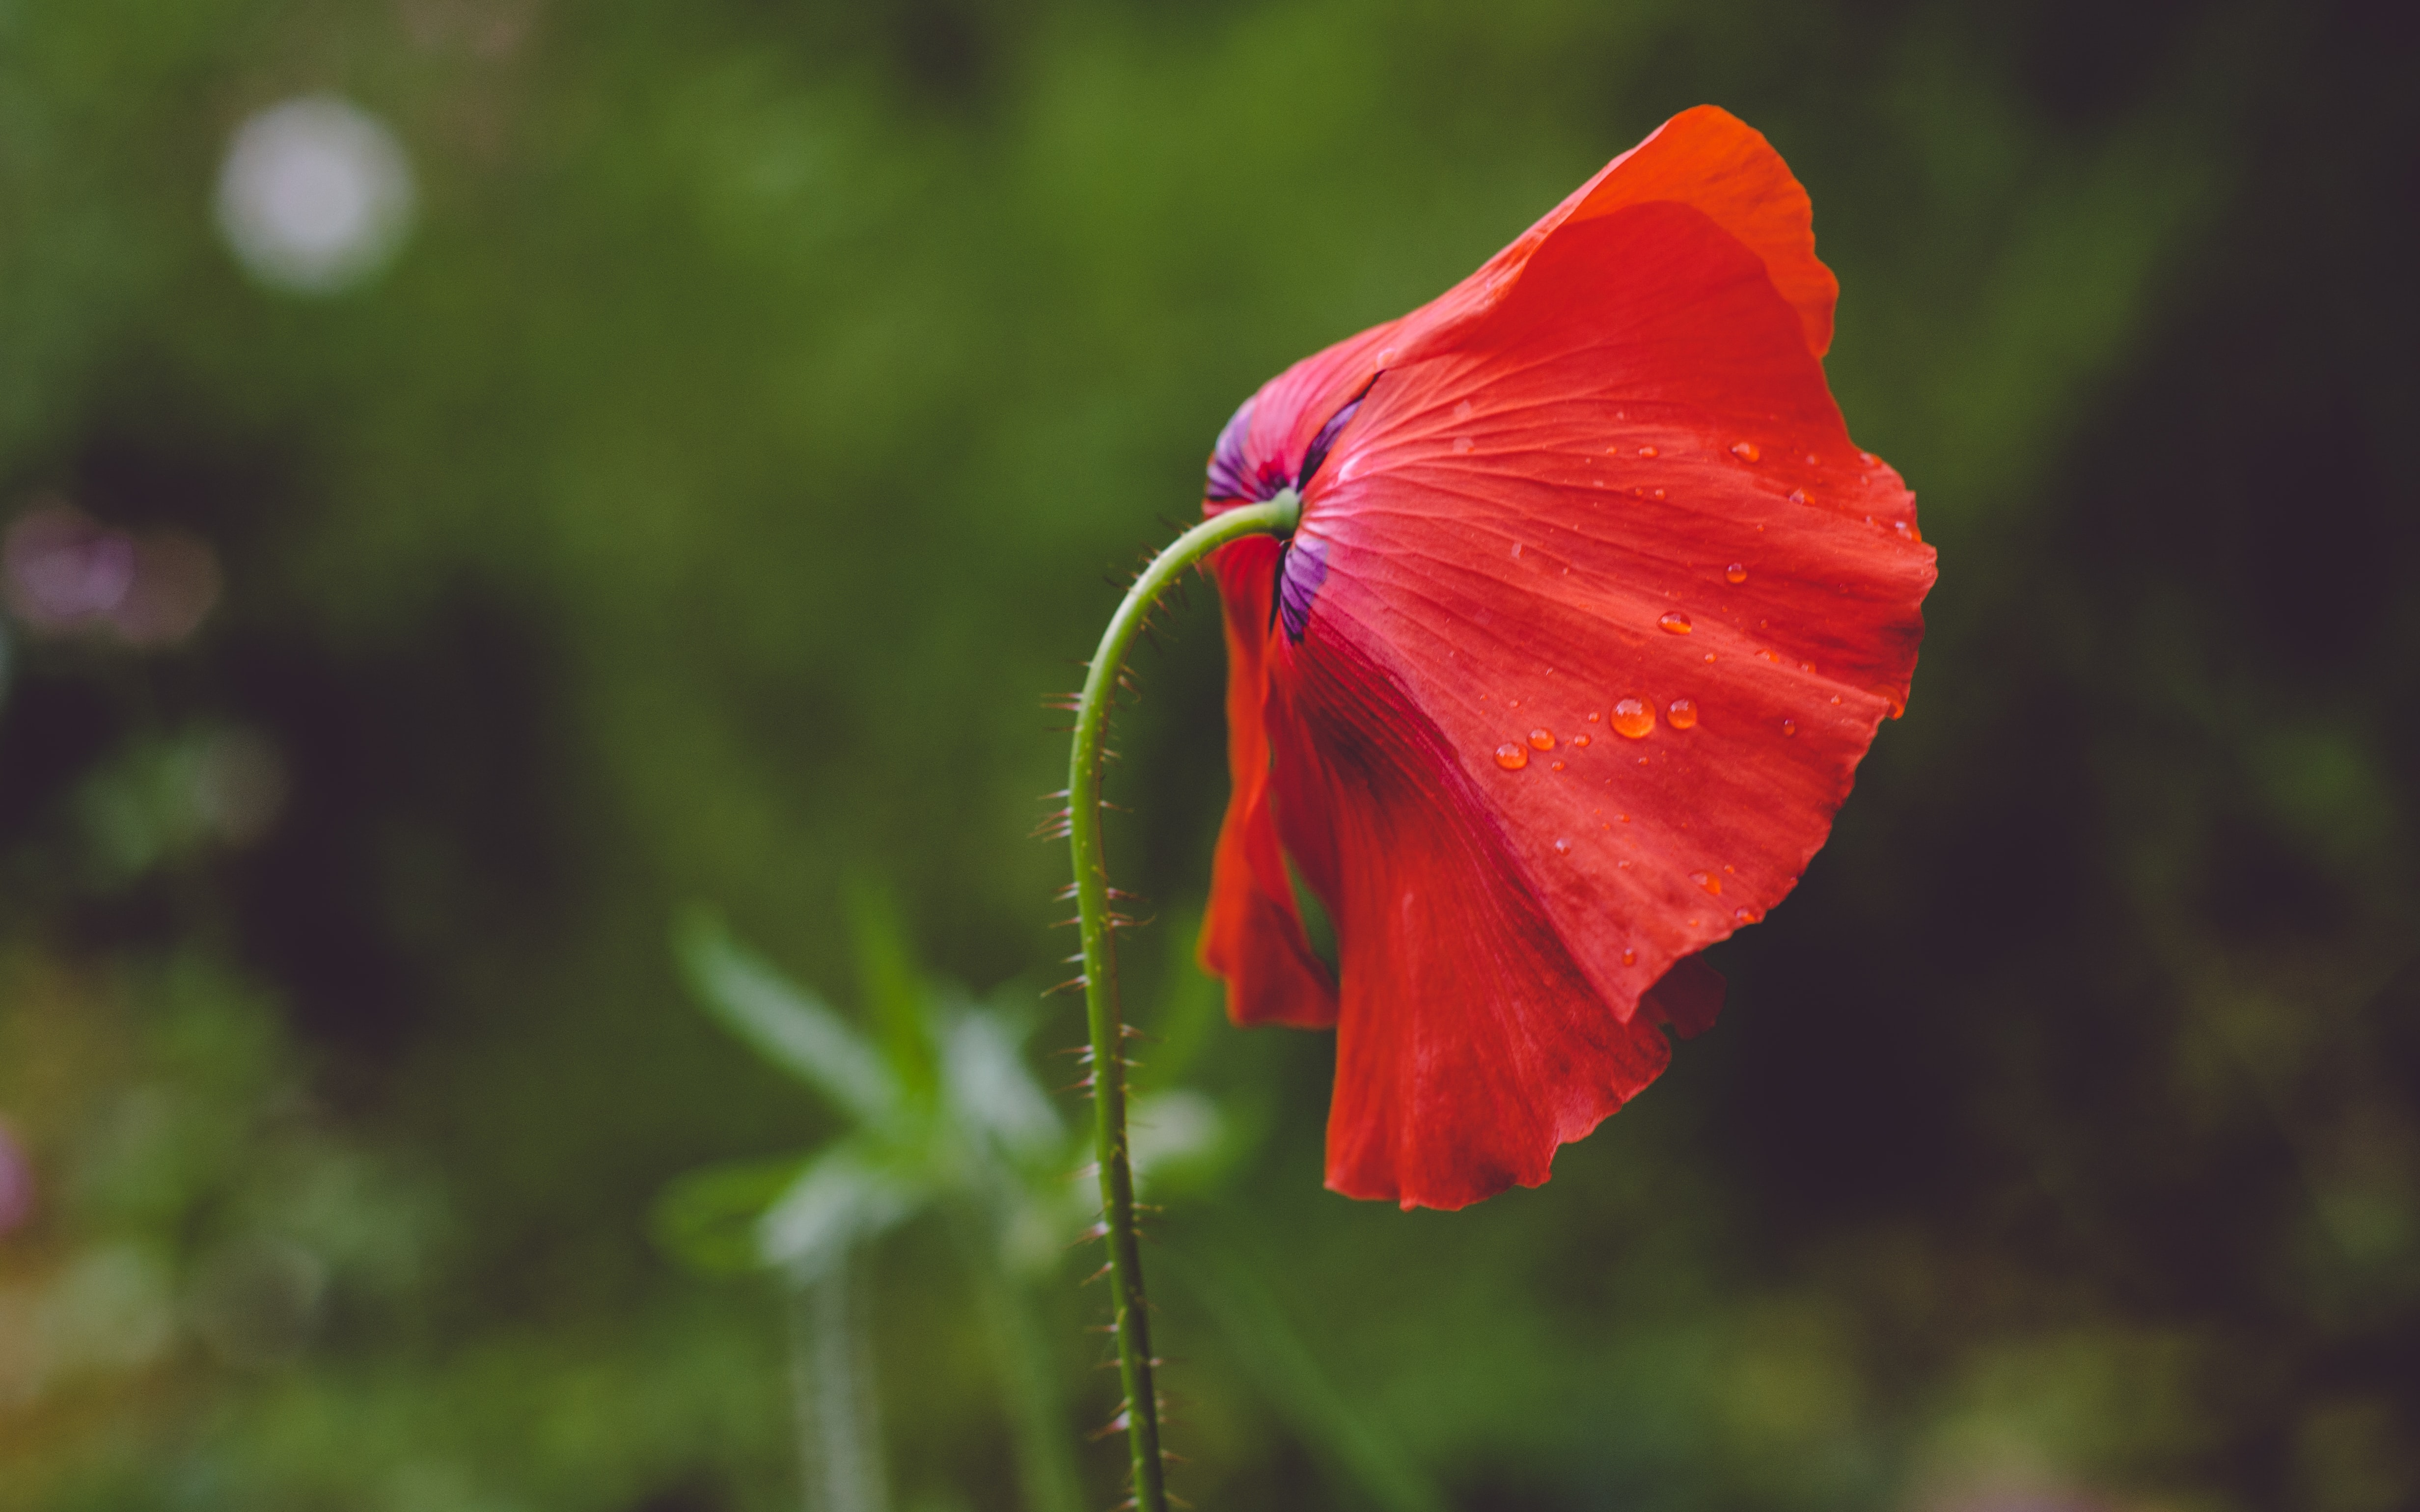 A red poppy flower covered with small droplets of water